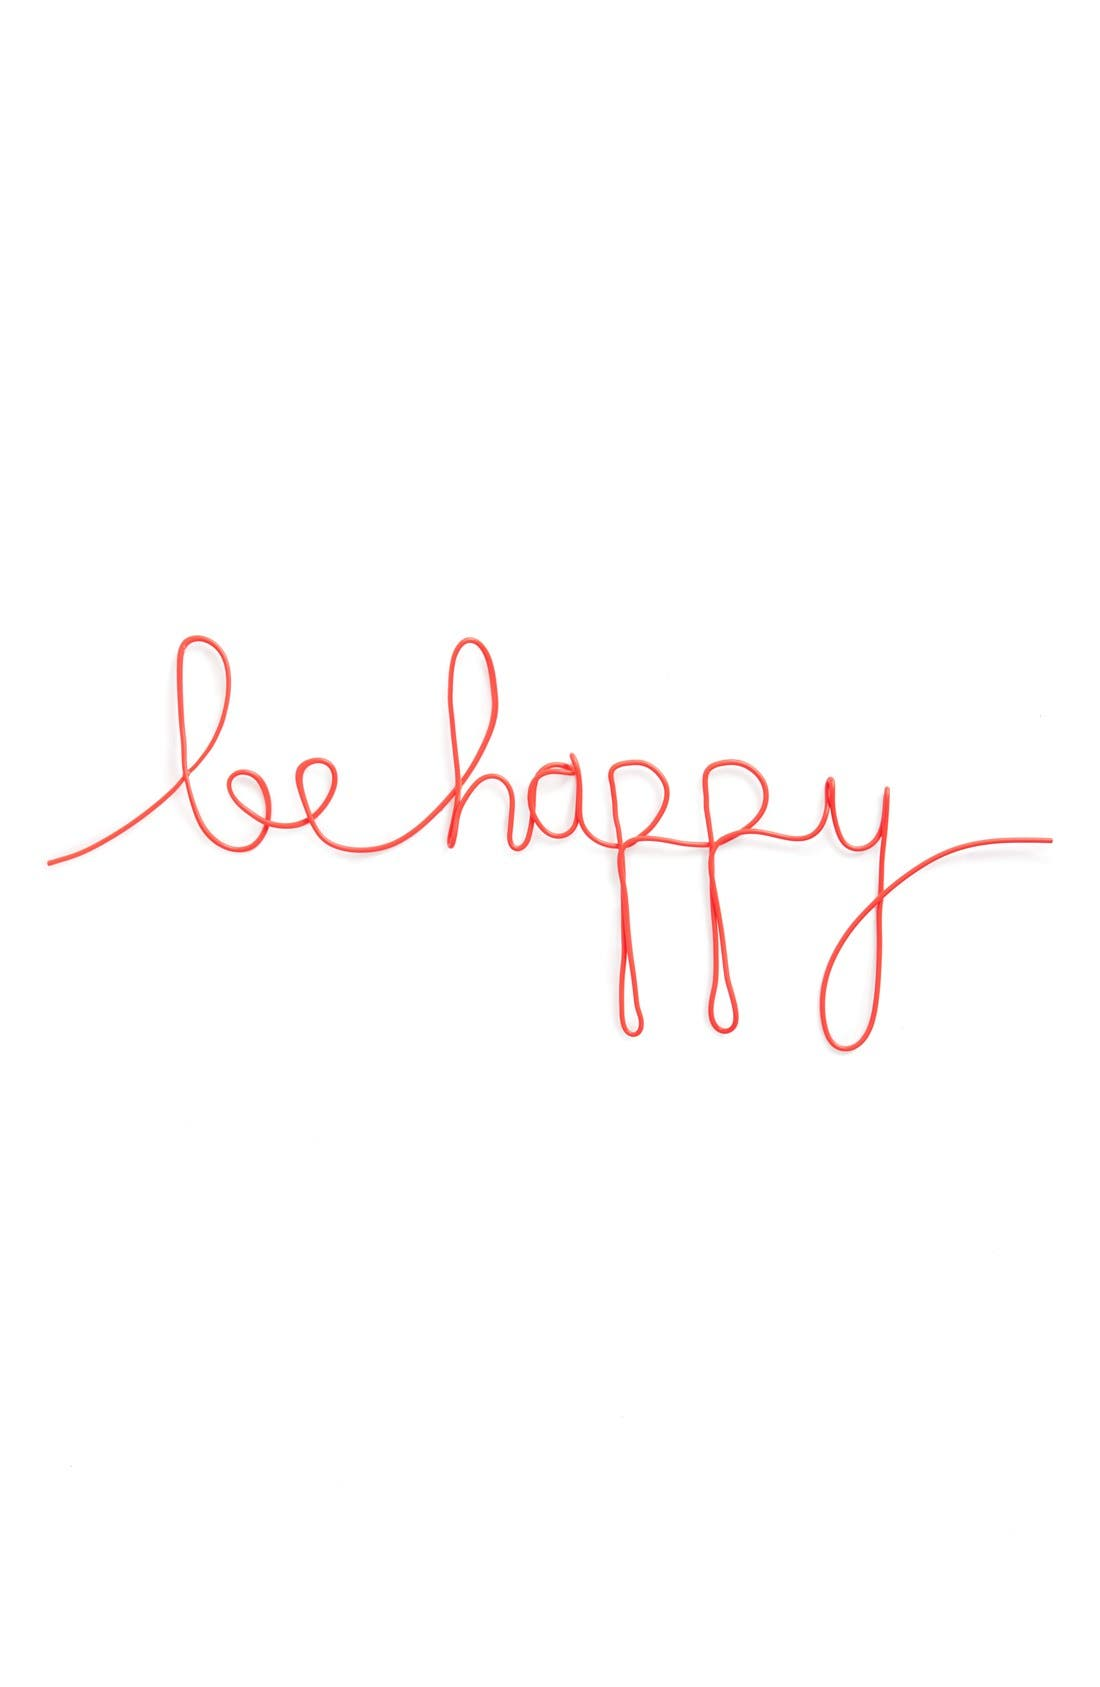 Alternate Image 1 Selected - Natural Life 'Be Happy' Wire Wall Art